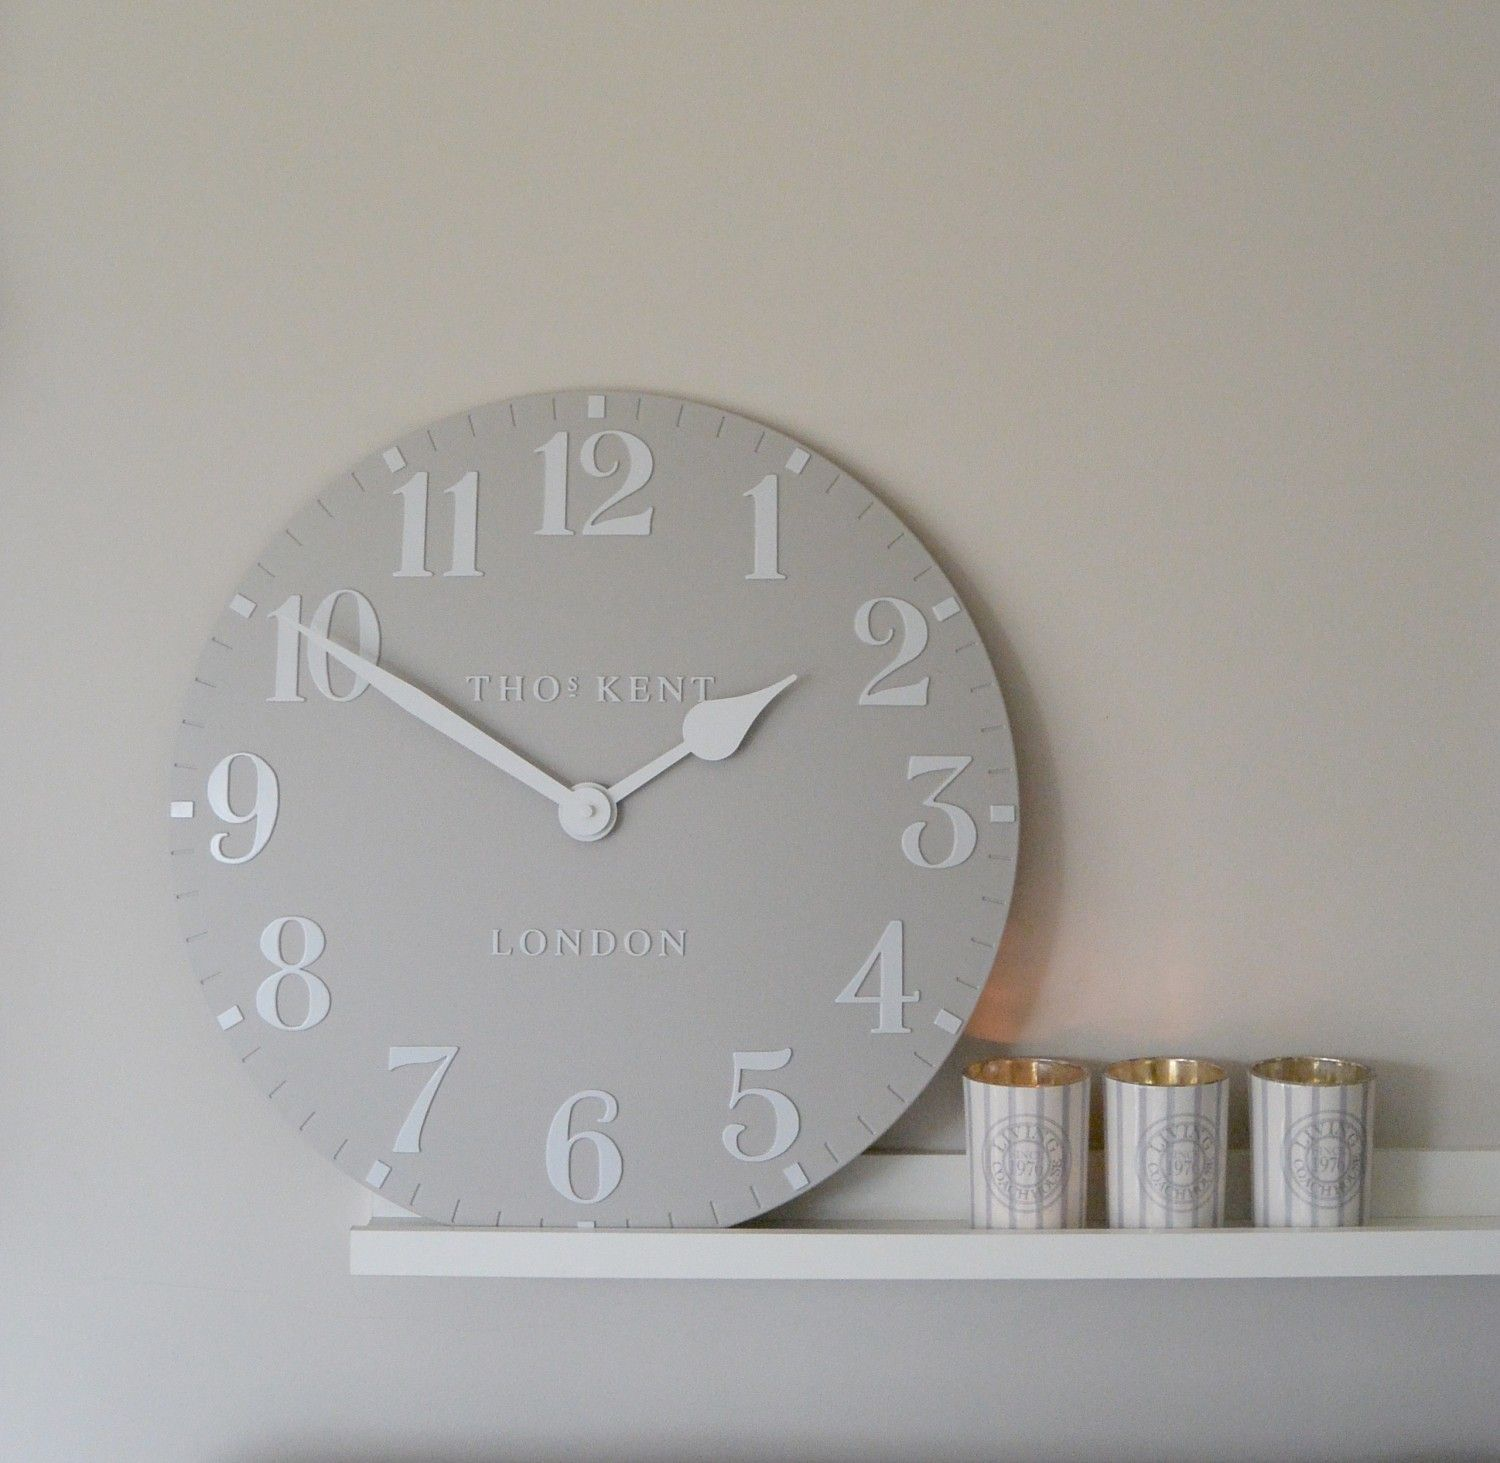 Clo006 Dove Grey 1222 Thomas Kent Wall Clock Reno Pinterest